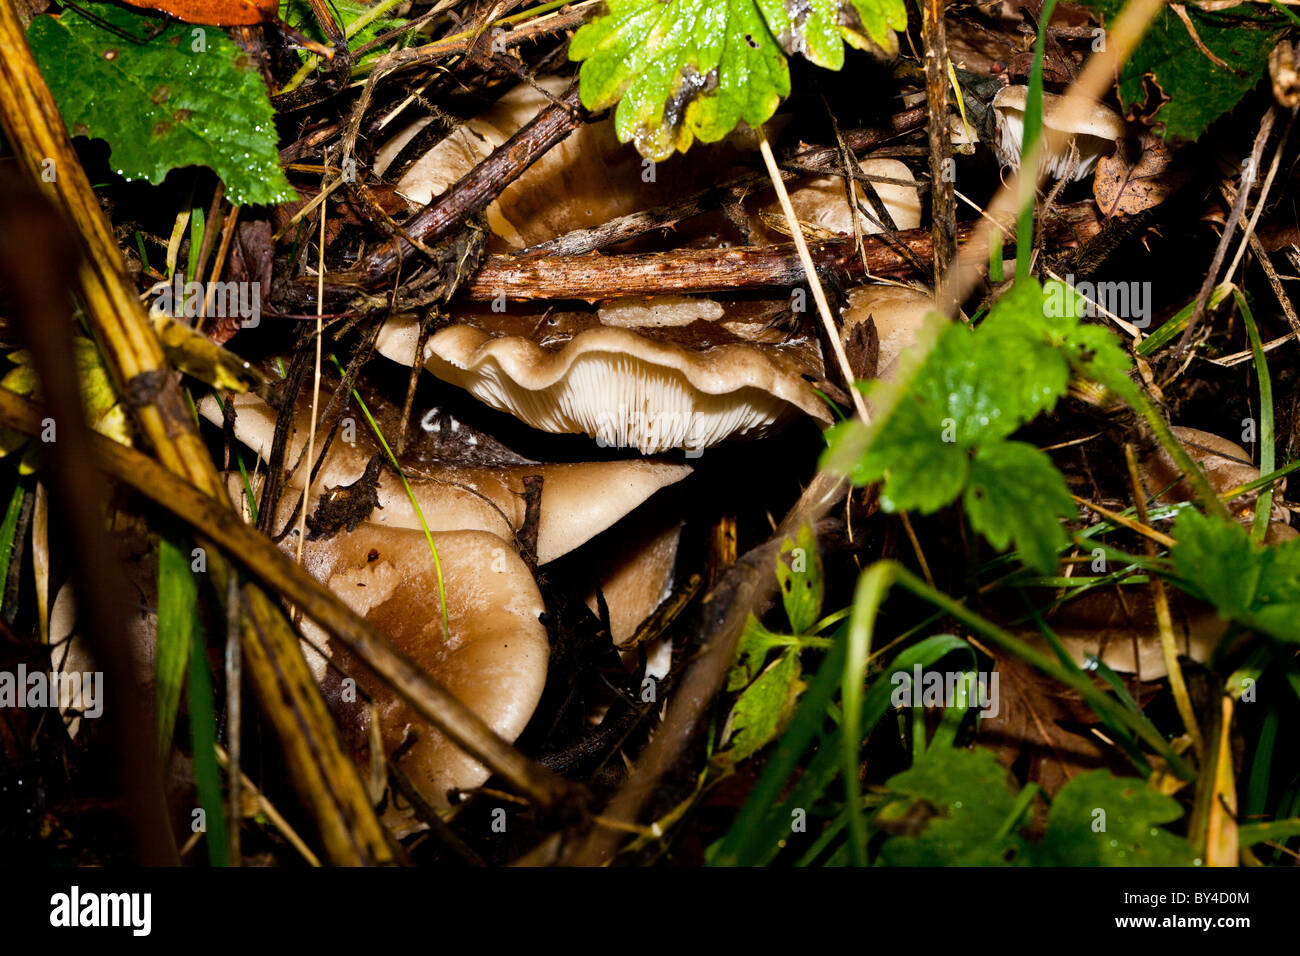 clouded funnel clitocybe nebularis - Stock Image